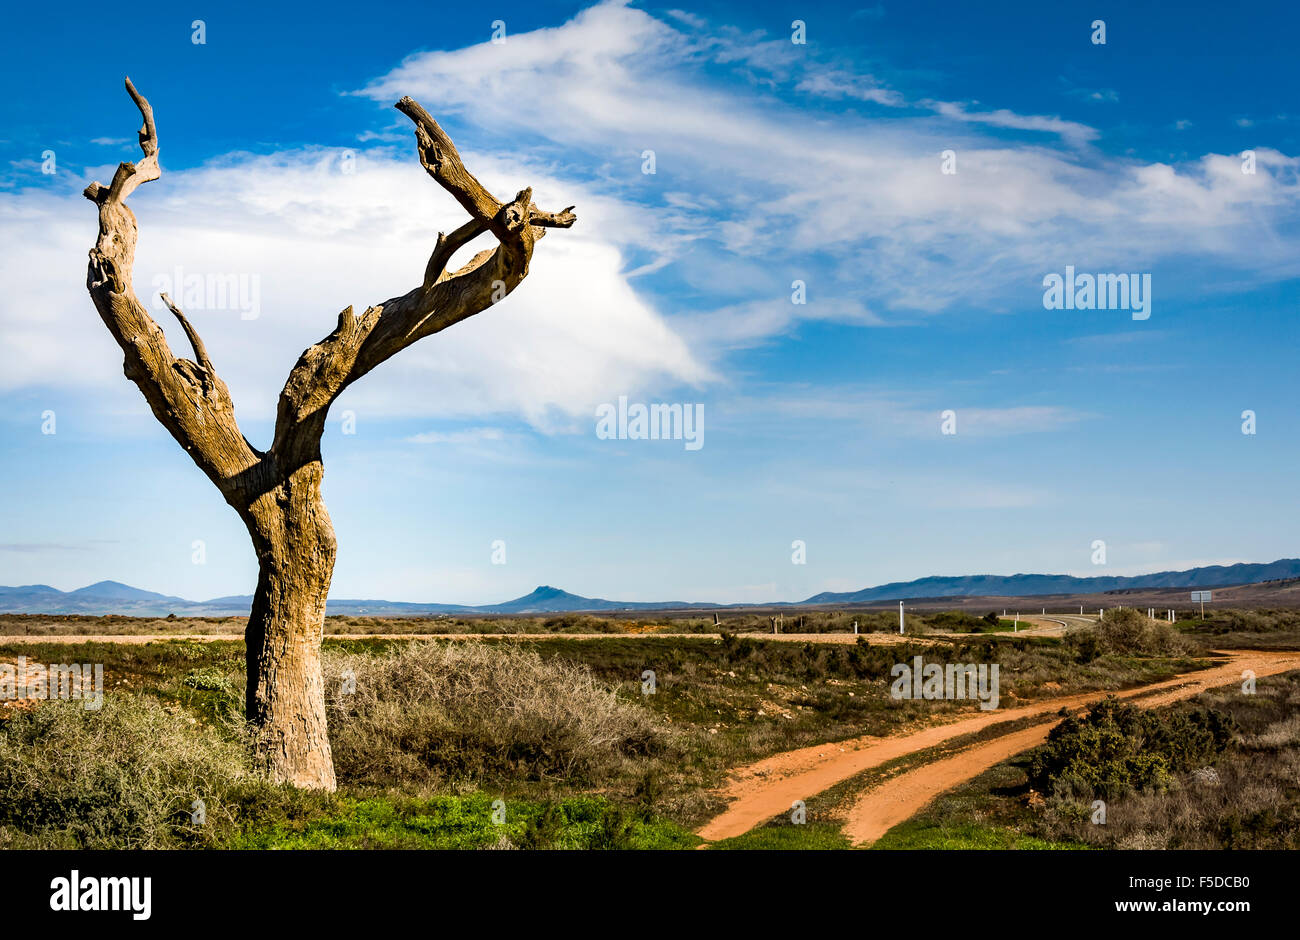 the australian outback - Stock Image